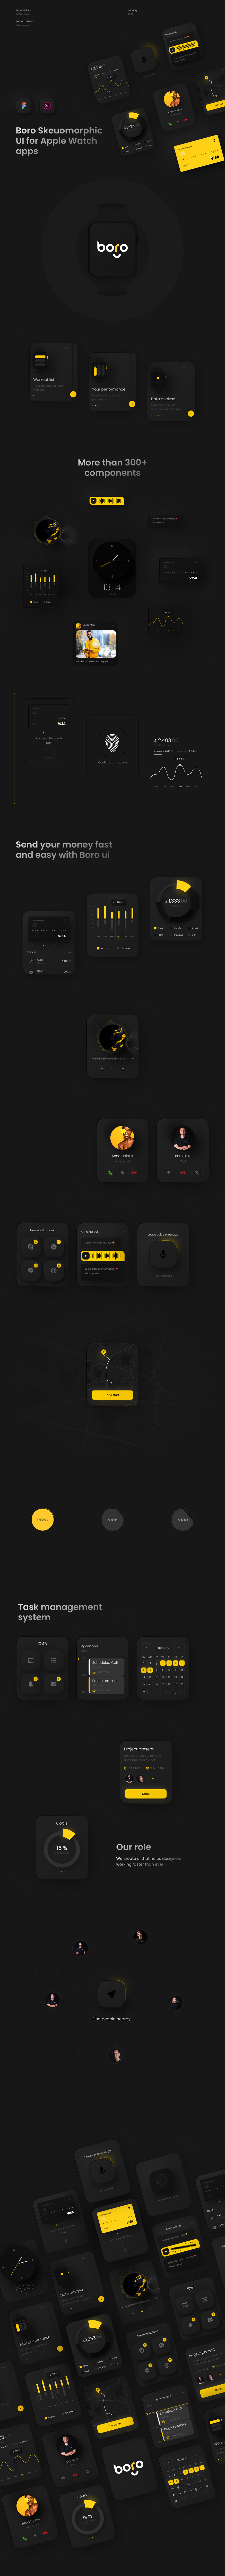 Boro Free UI Kit for Apple Watch Apps - A clean and modern look for the Apple Watch user interface.